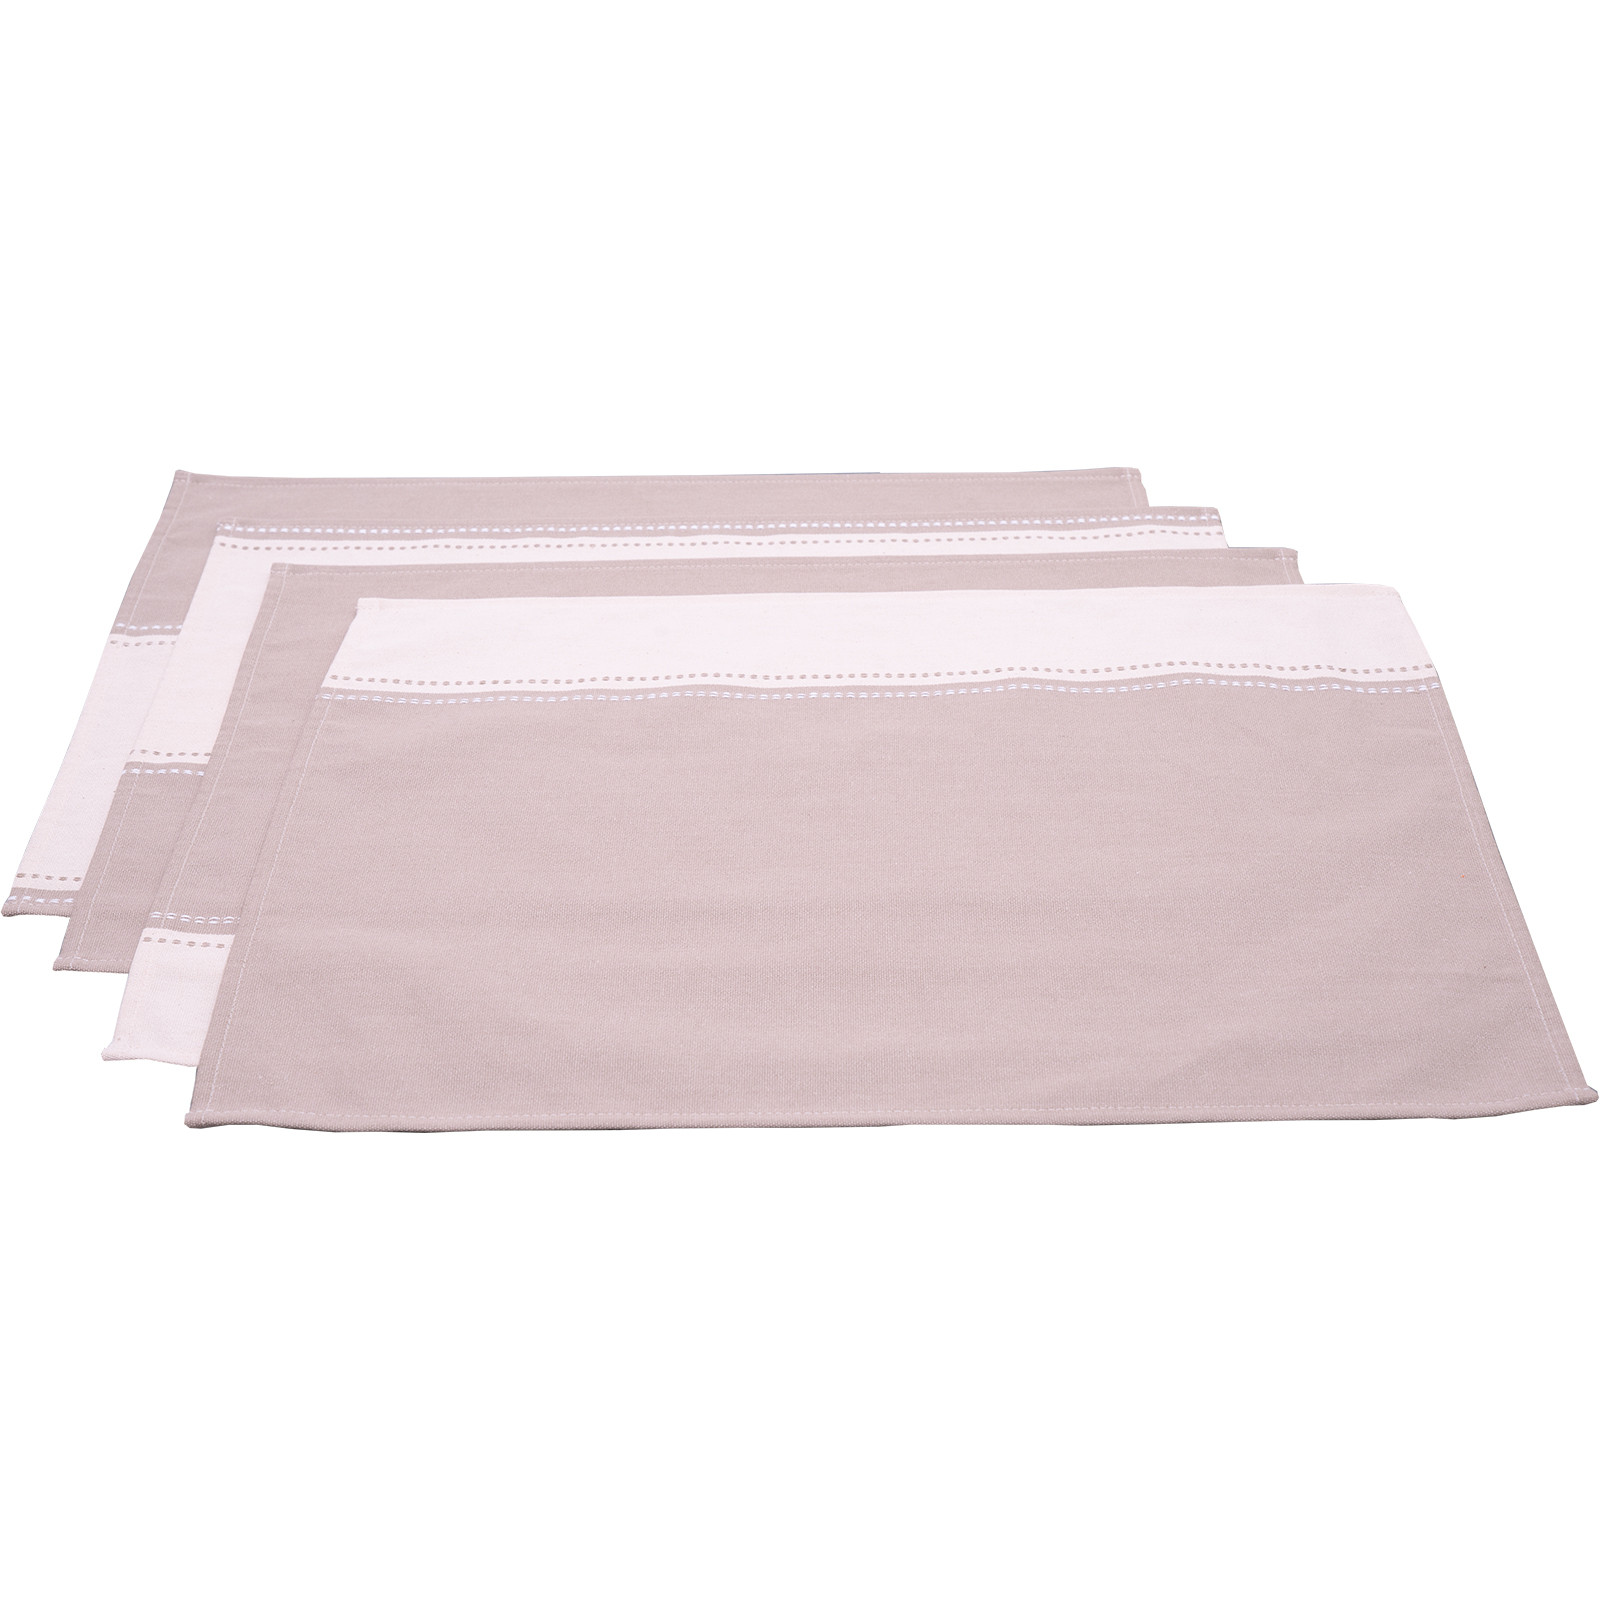 Placemats GRAND SELLIER(sold by 4)